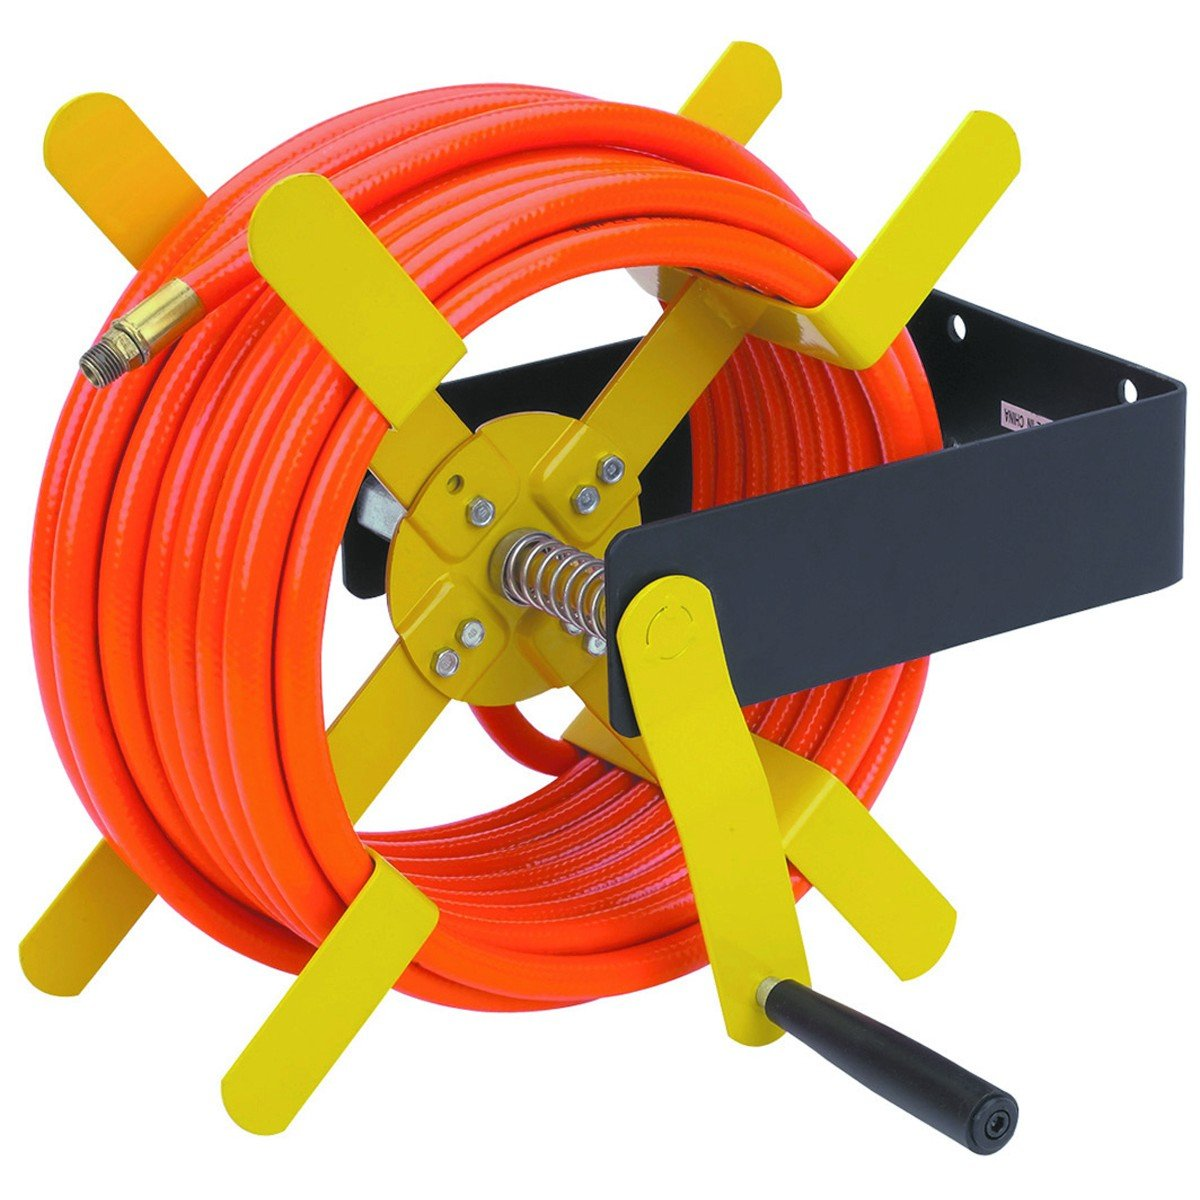 100 Ft Open Side Steel Air Hose Reel By Harbor Freight Tools